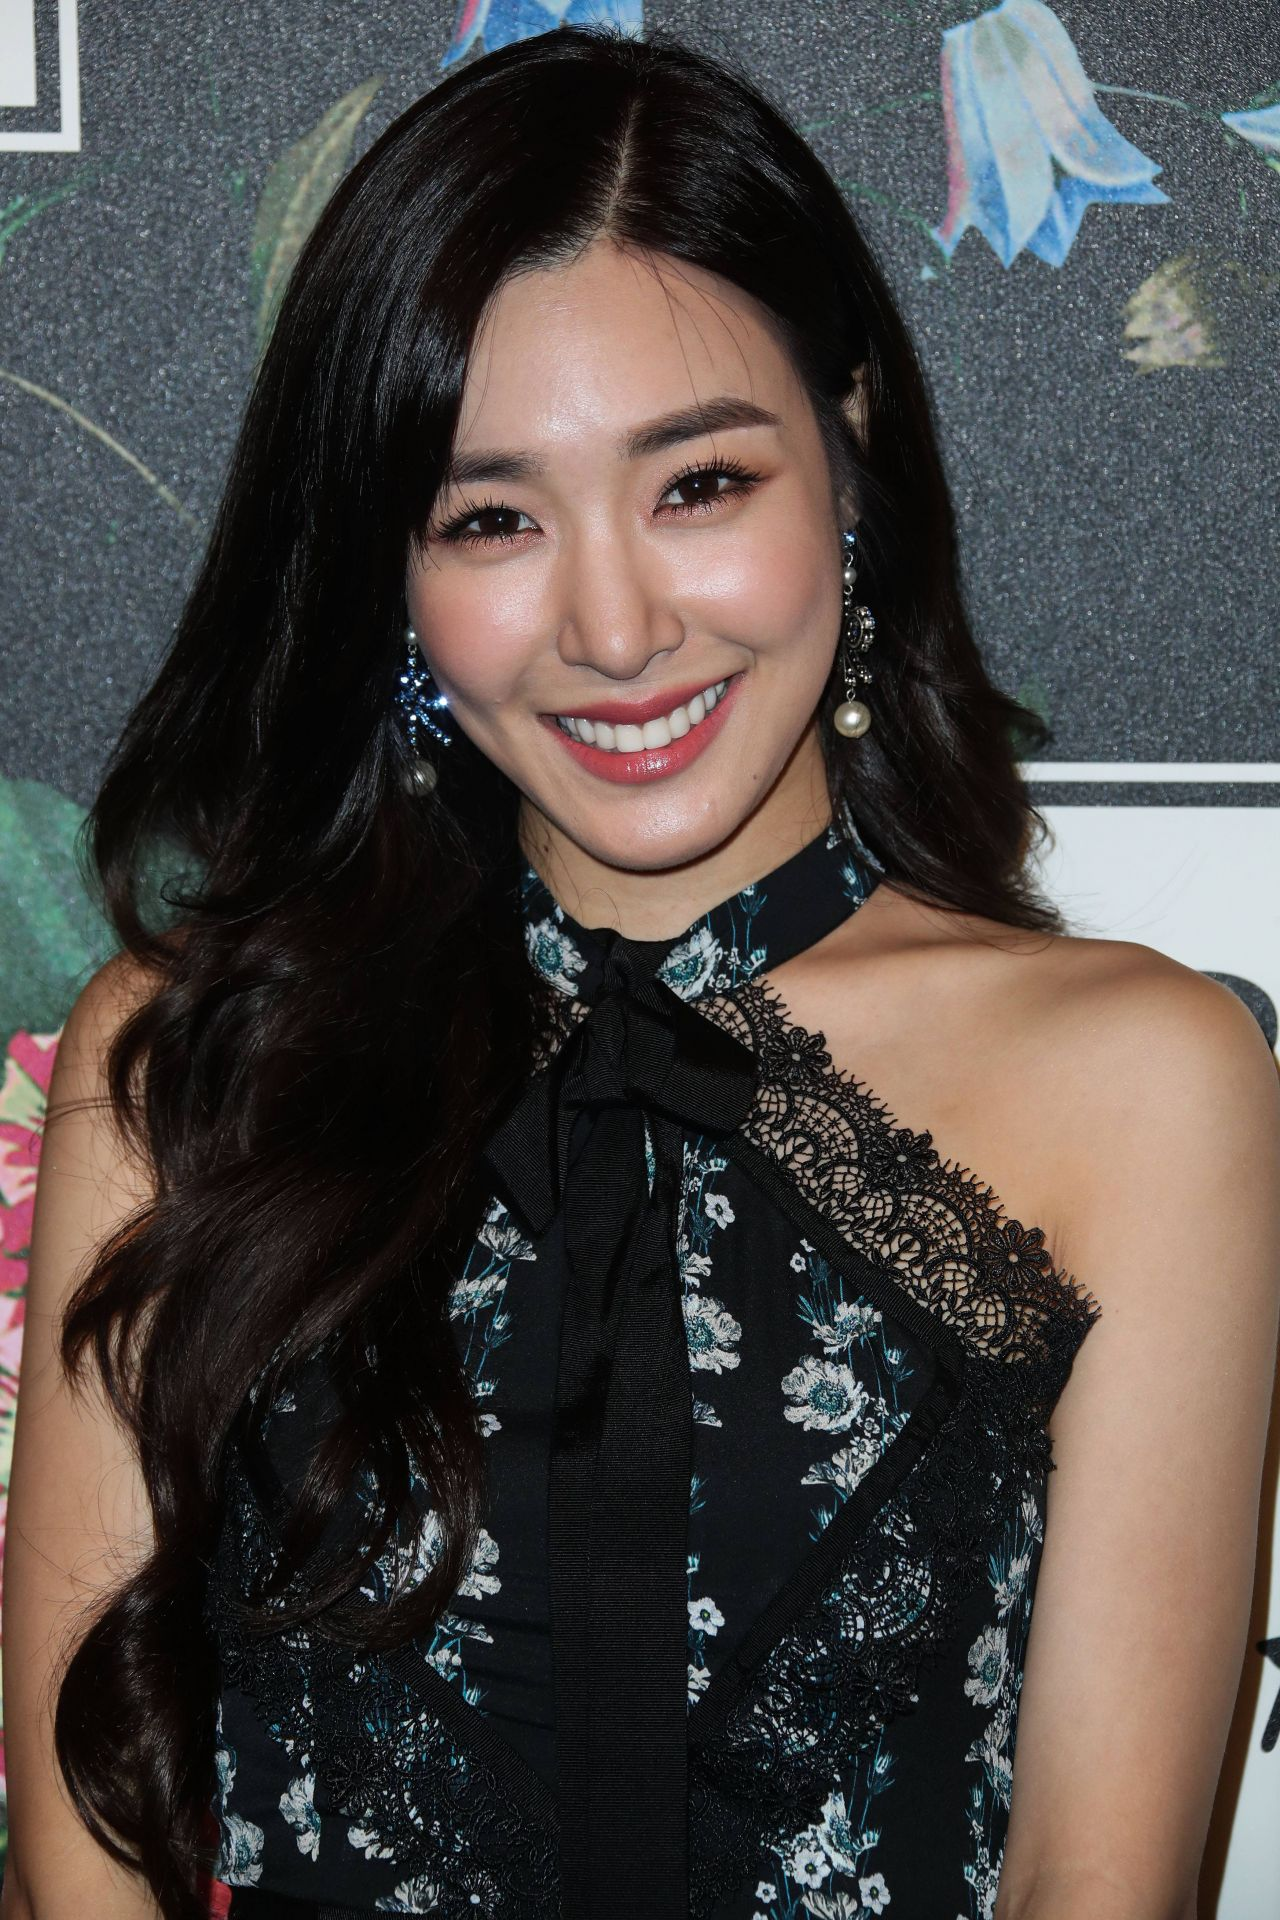 16b7c43536ba7 ... 24-Oct-2017 10:13 163K tiffany-hwang-erdem-x-h-m-launch-event-in-la-5.jpg  24-Oct-2017 10:13 113K tiffany-hwang-erdem-x-h-m-launch-event-in-la-6.jpg  ...